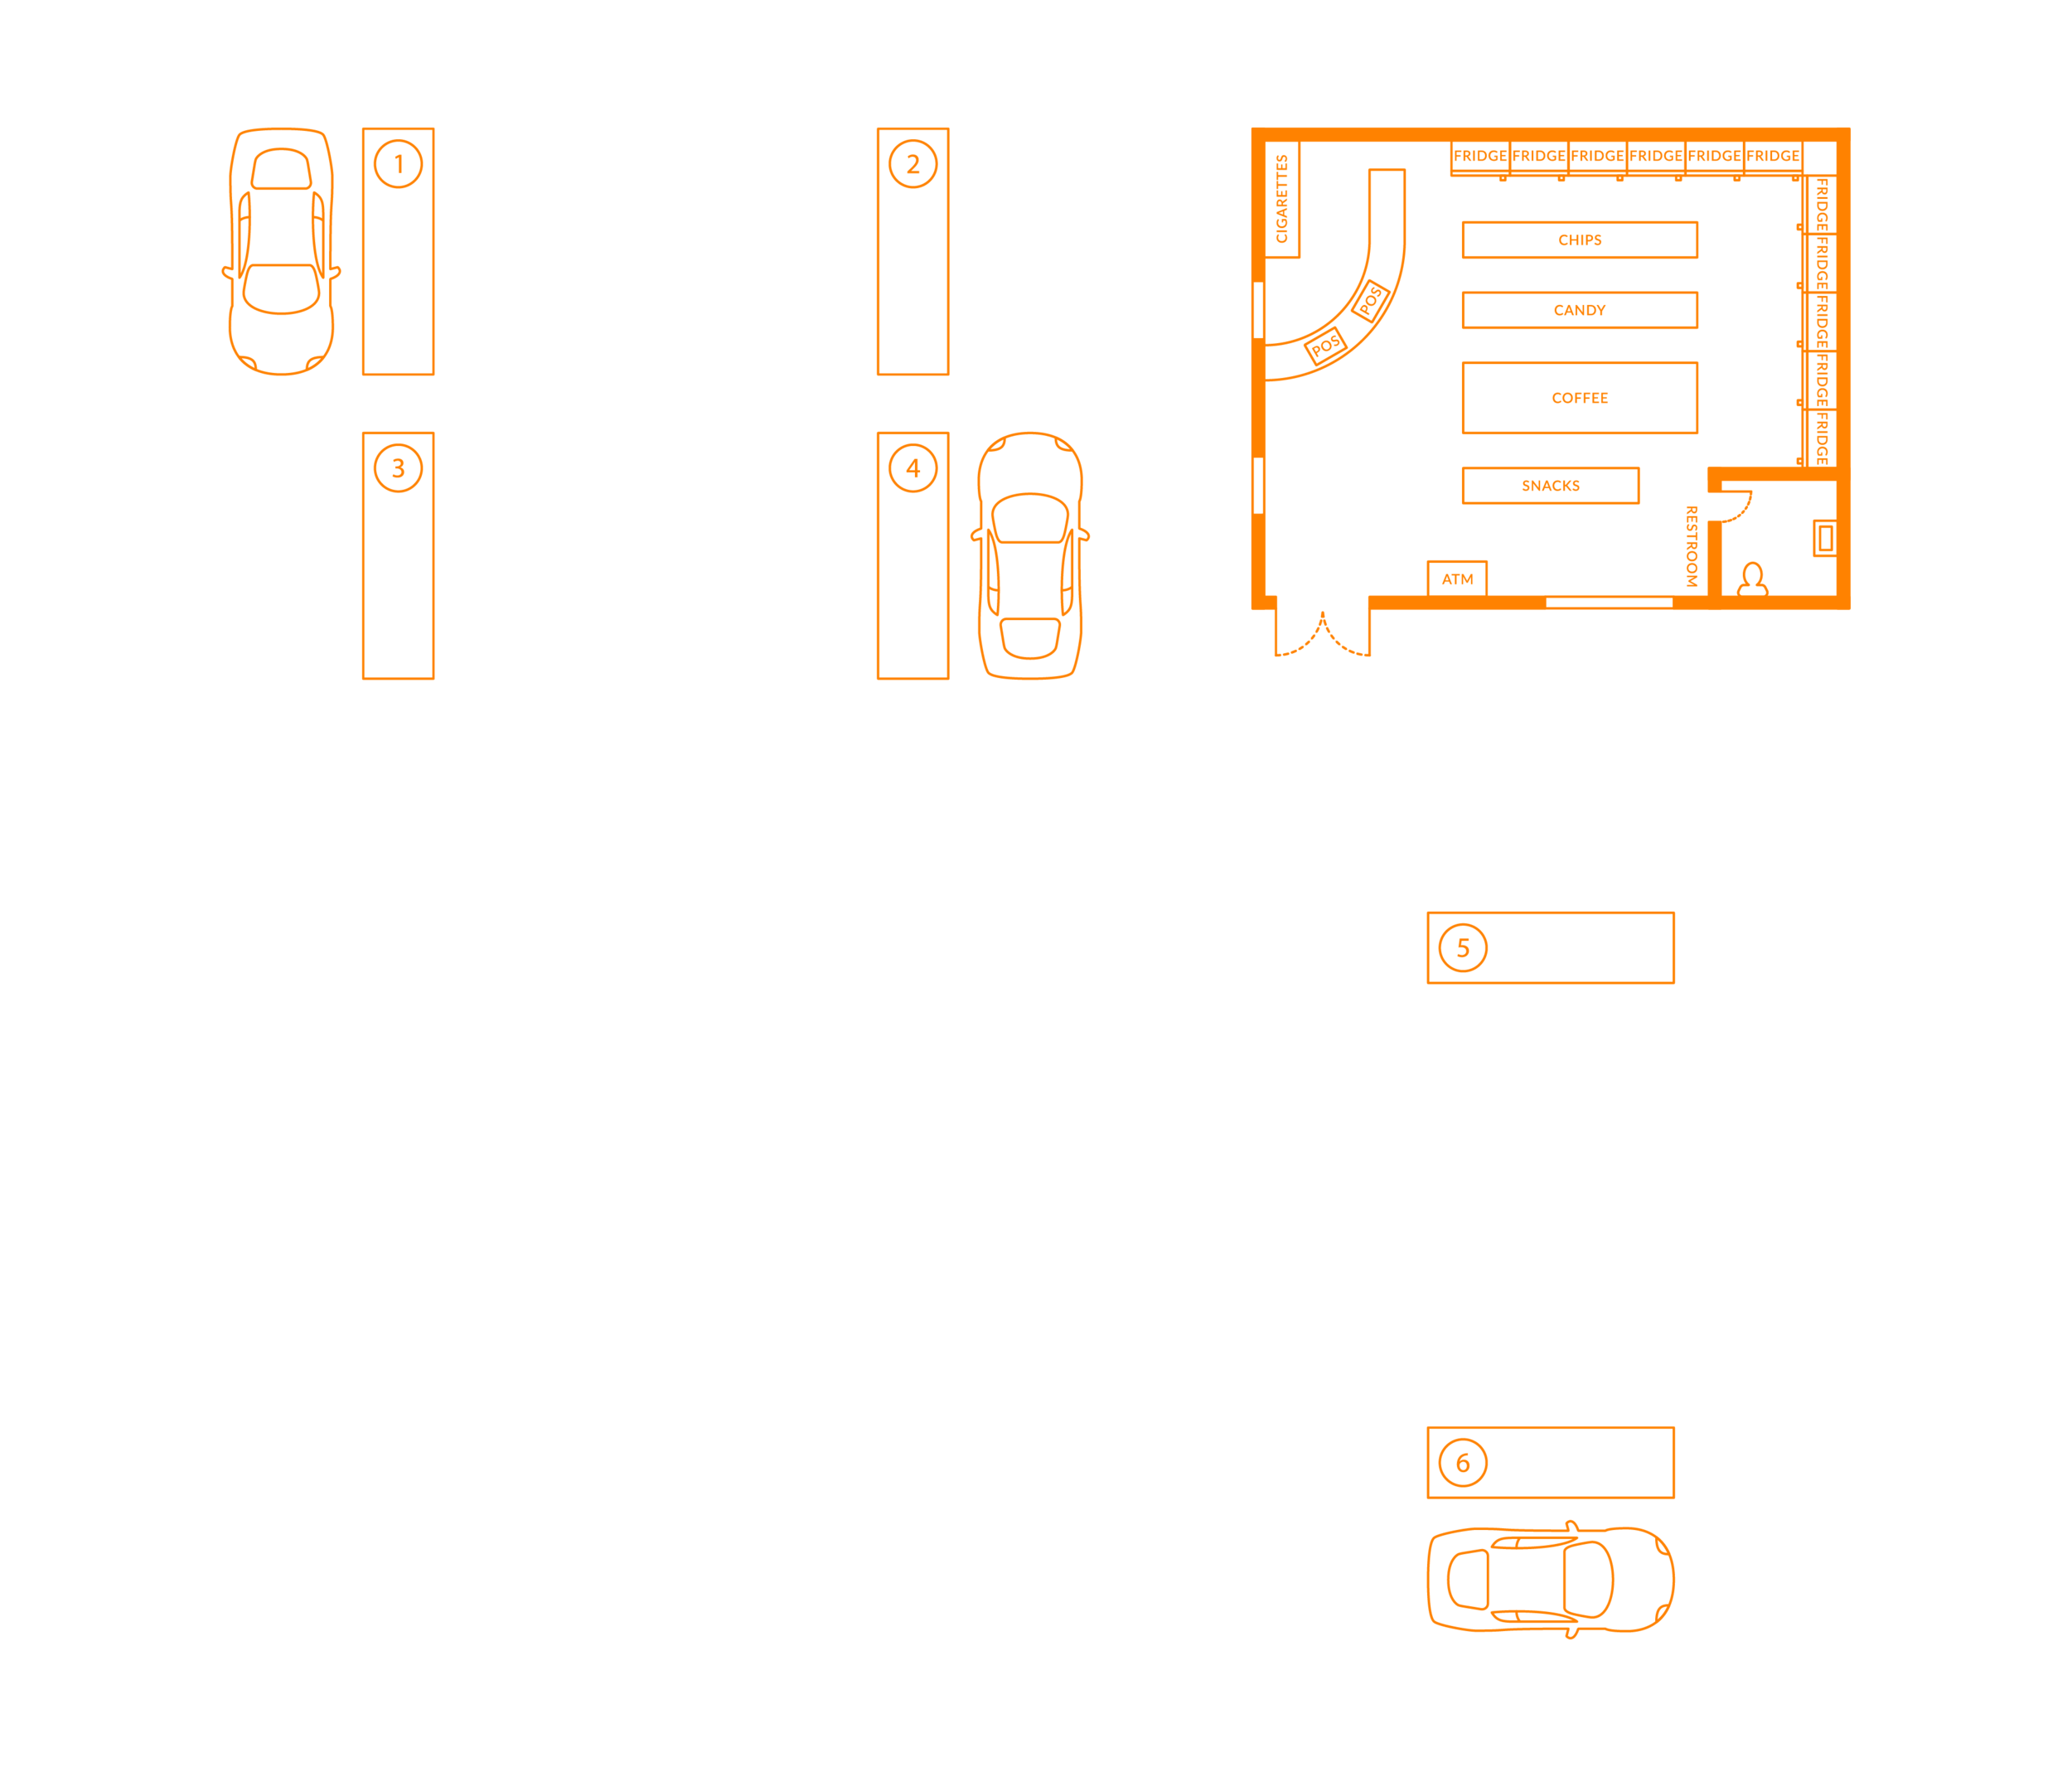 180416_claire_map_layout_tracings_gas_station-01.png